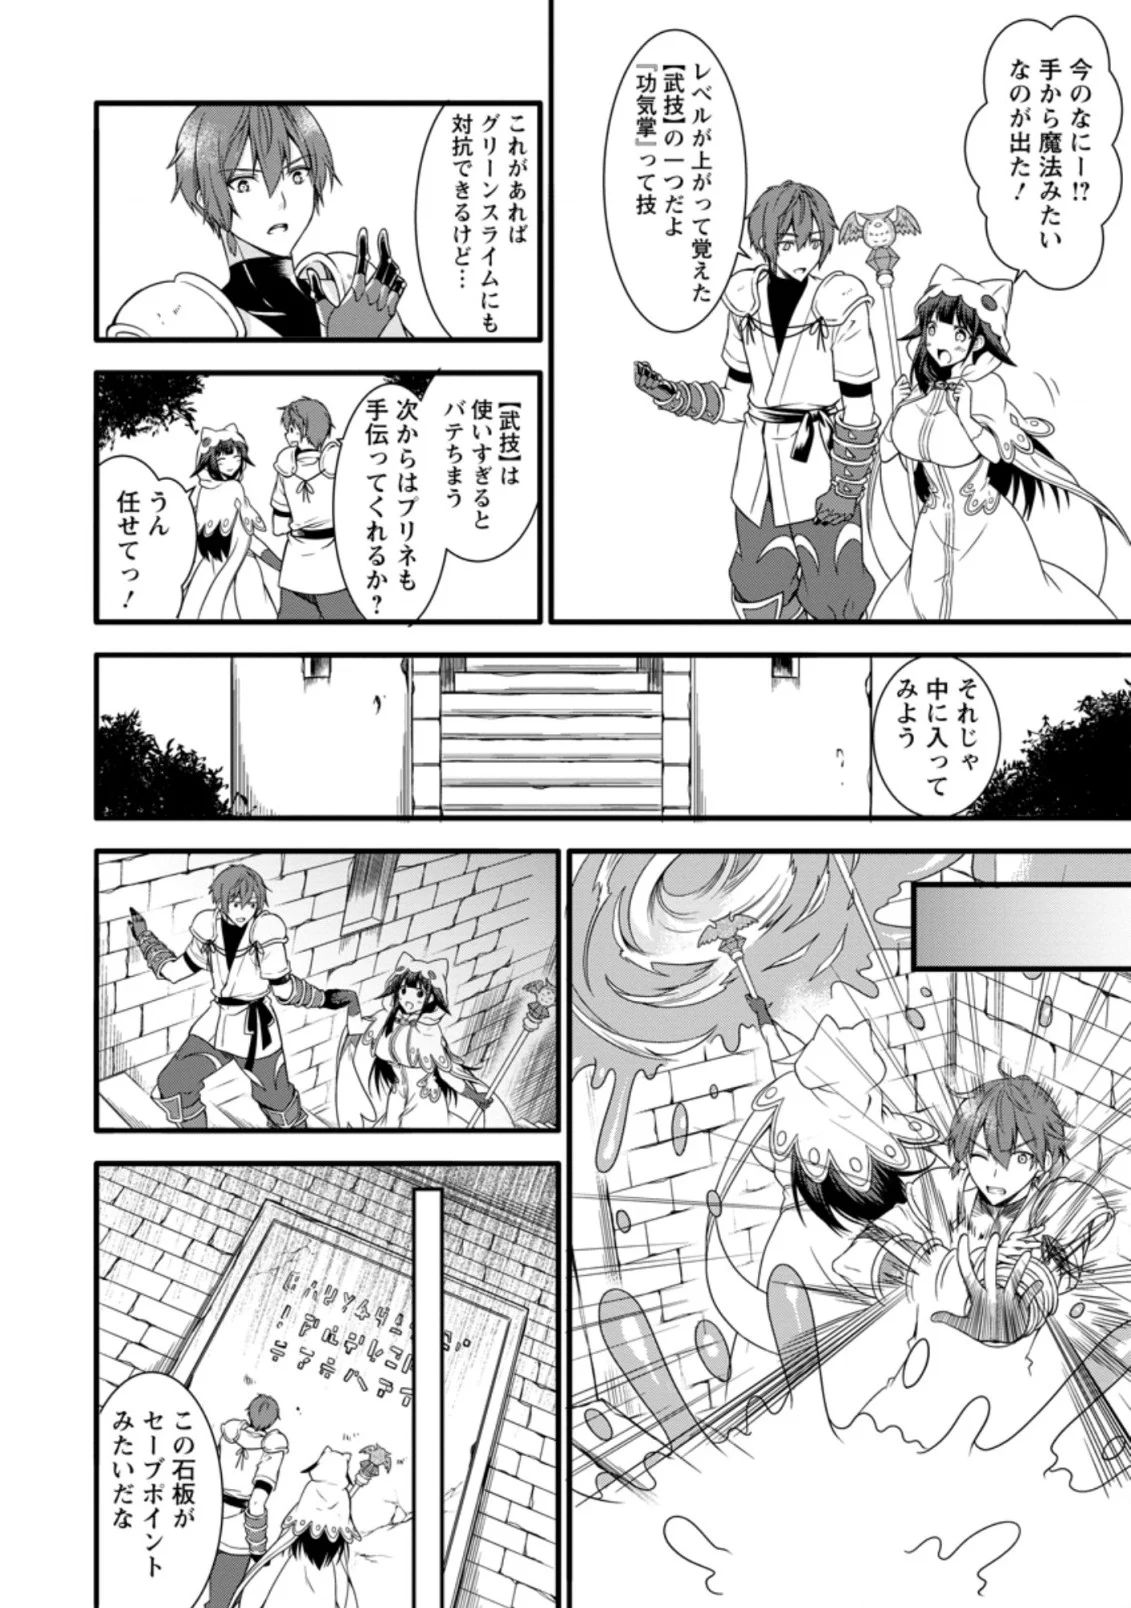 Manga Raw Kami Skill Kokyuu Suru dake de Level Up Suru Boku wa Kamigami no Dungeon e Idomu Manga Chapter 13.2